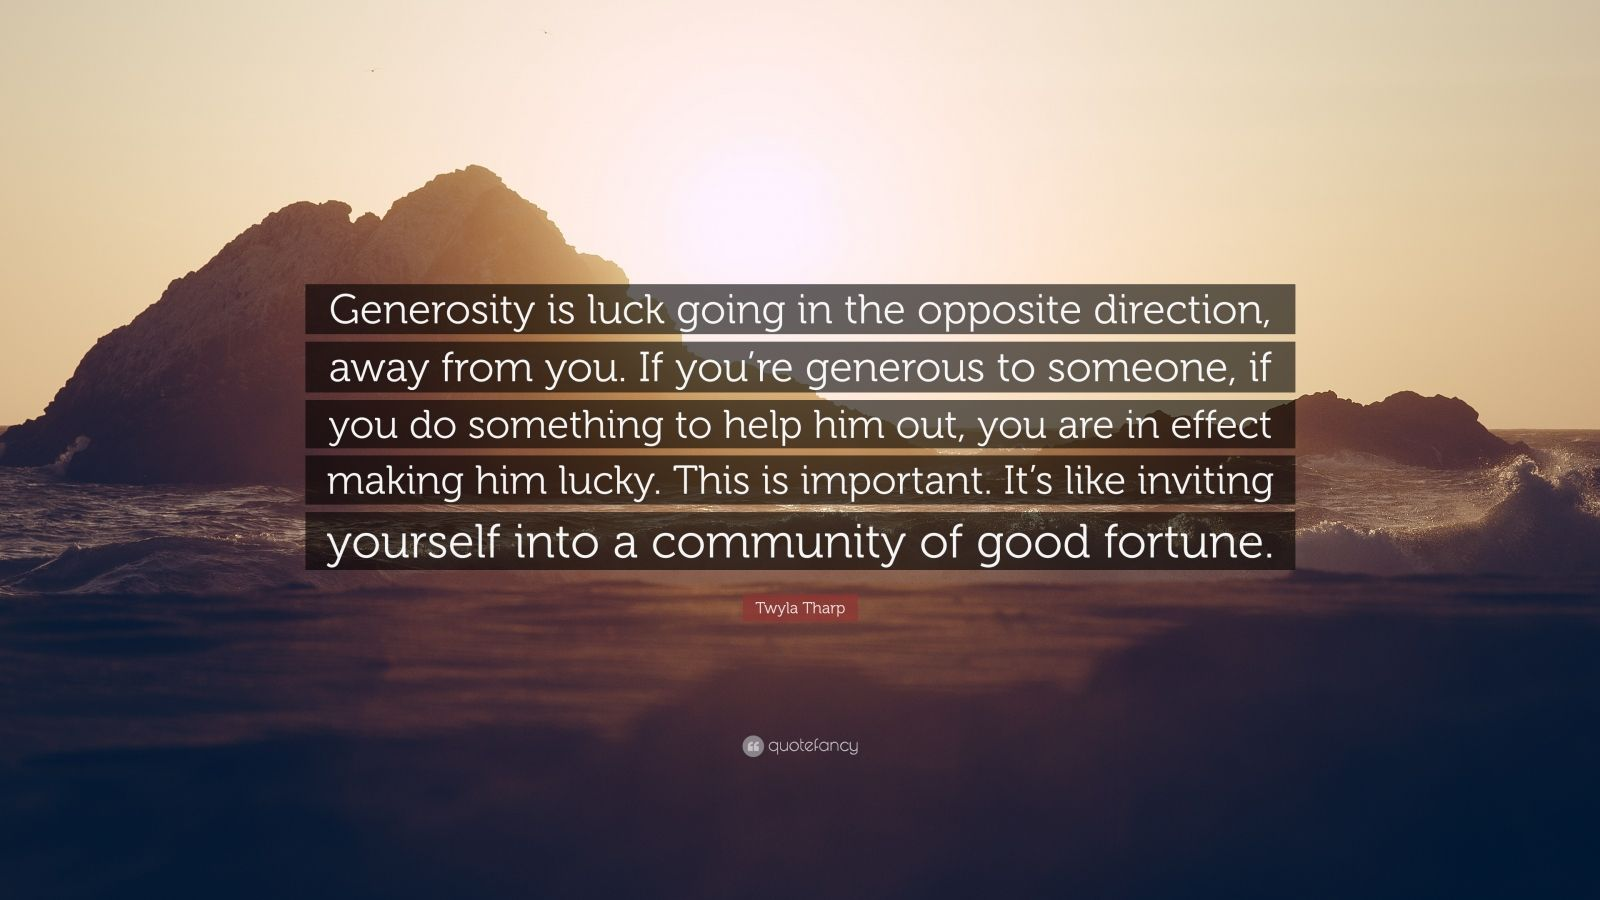 """Twyla Tharp Quote: """"Generosity is luck going in the opposite direction, away from you. If you're generous to someone, if you do something to help him out, you are in effect making him lucky. This is important. It's like inviting yourself into a community of good fortune."""""""